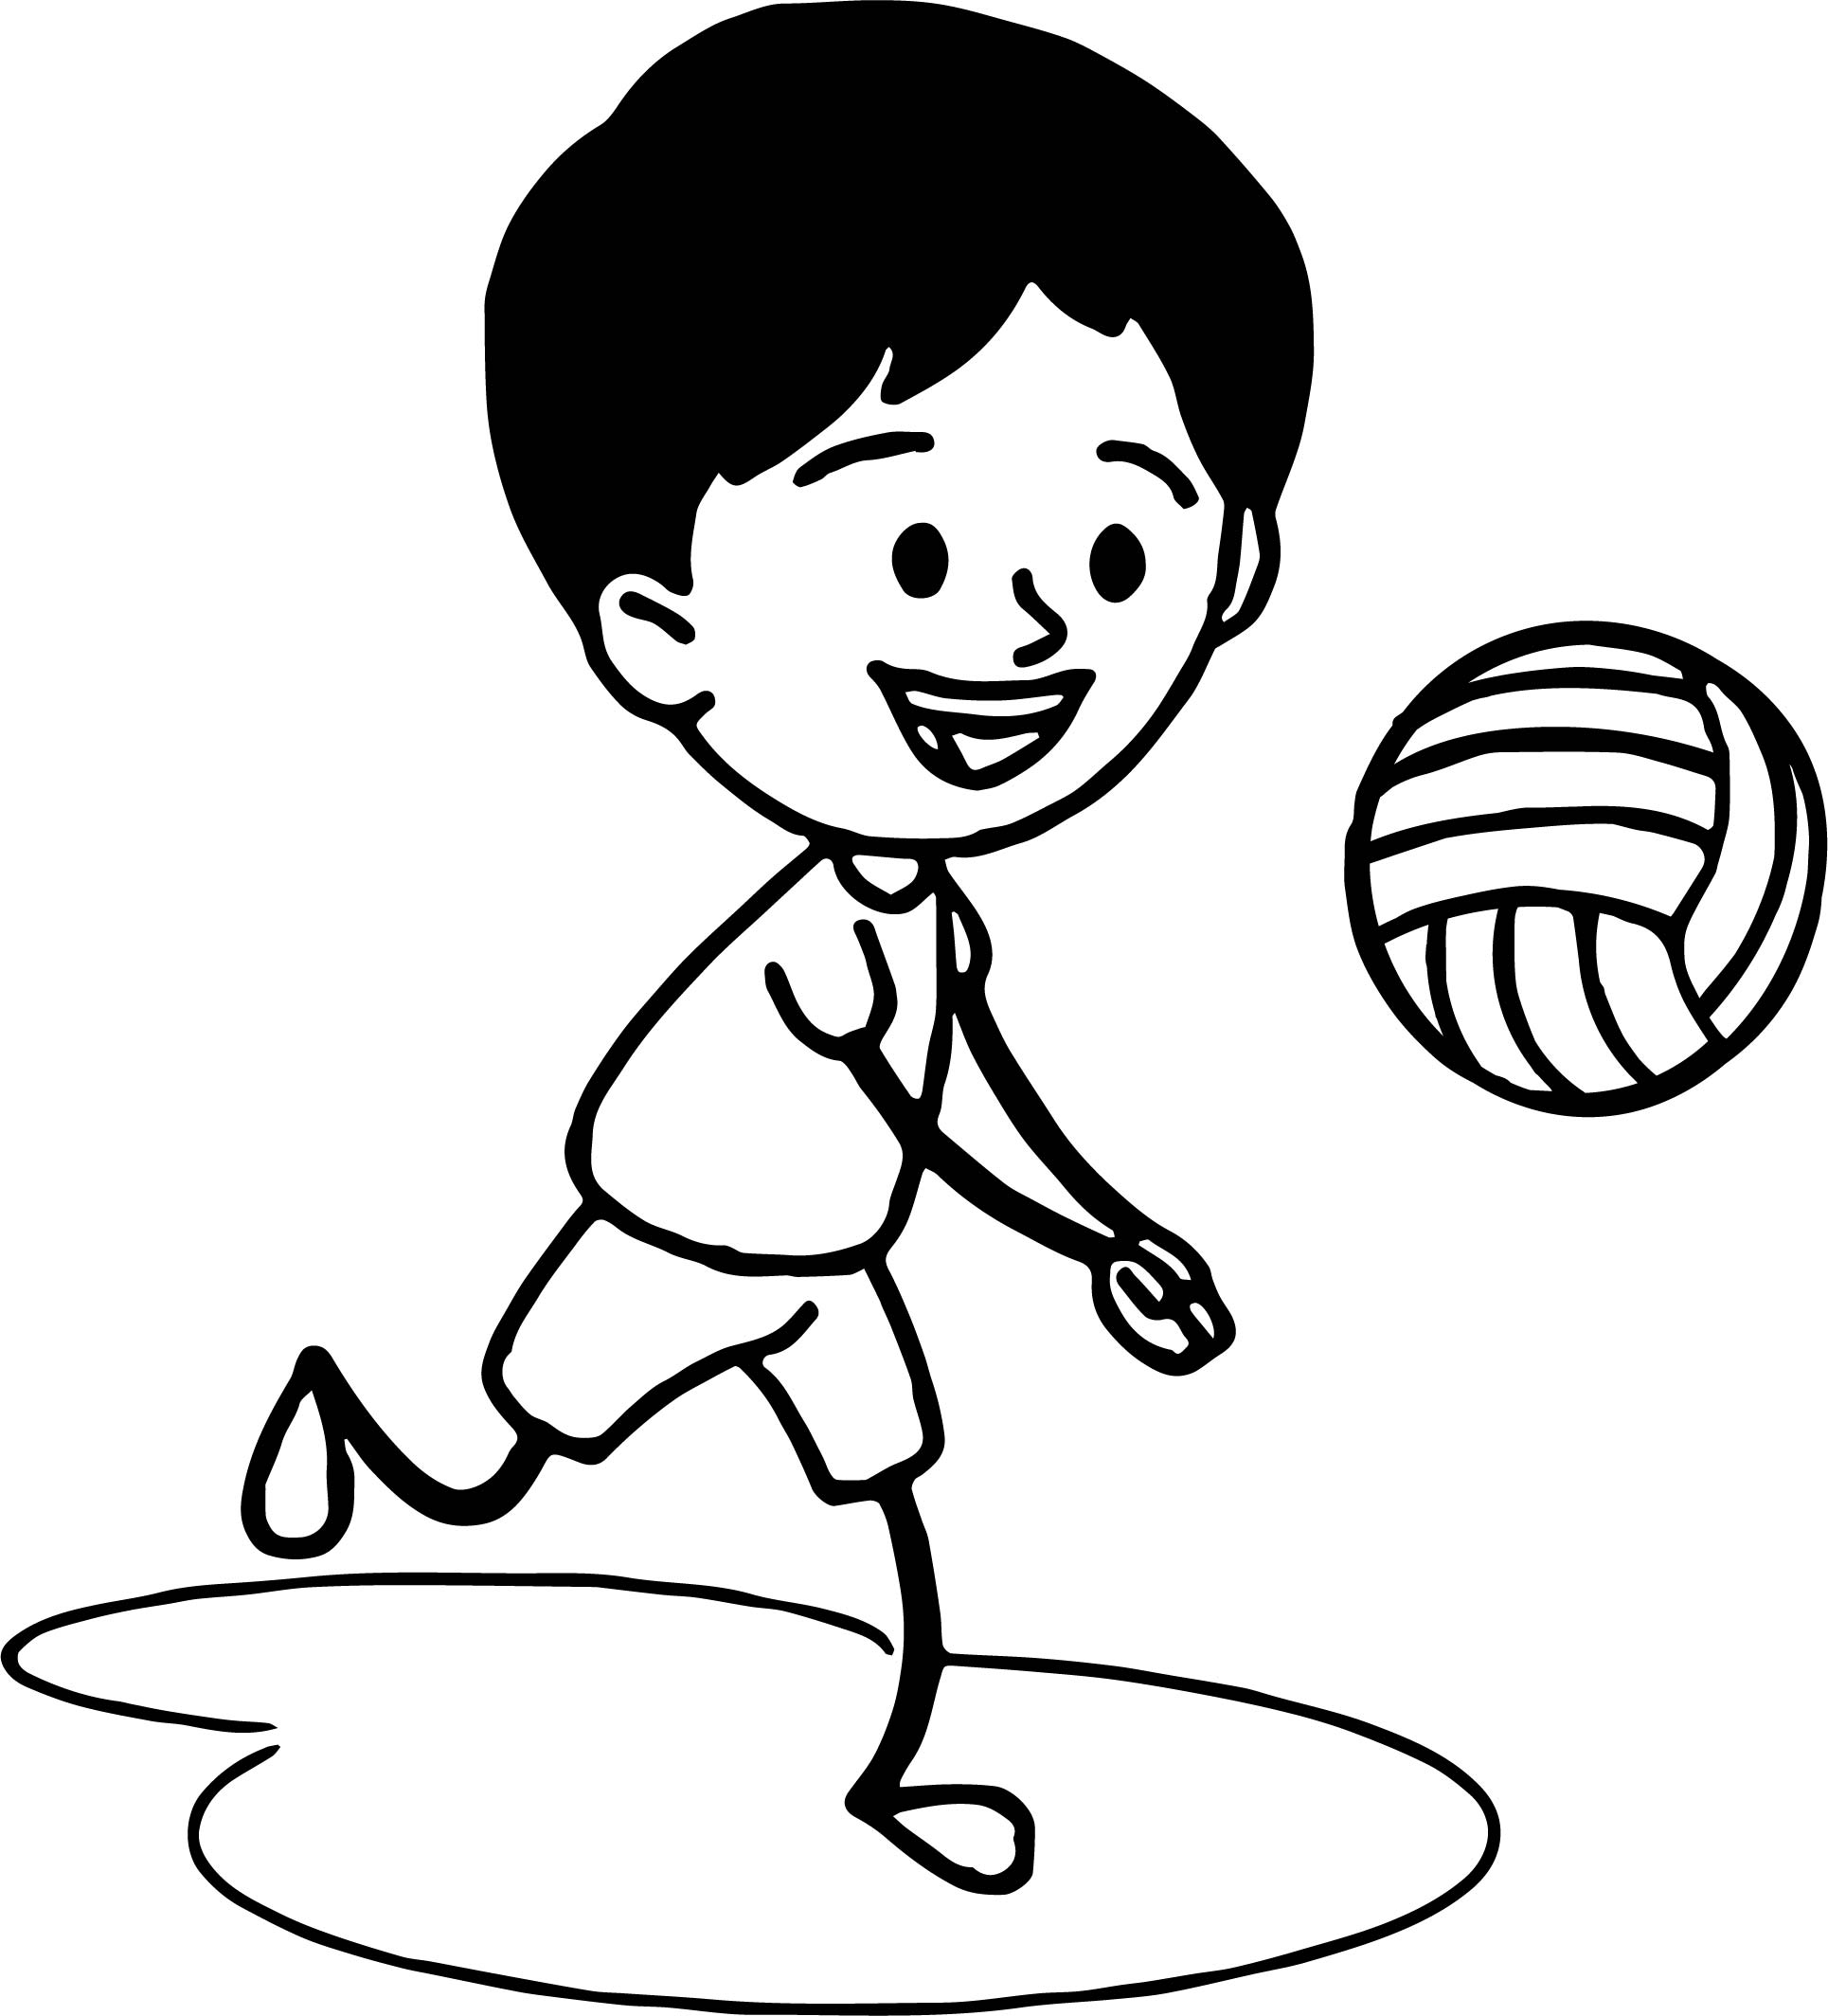 volleyball coloring pages top bell ghost crab coloring pages crab